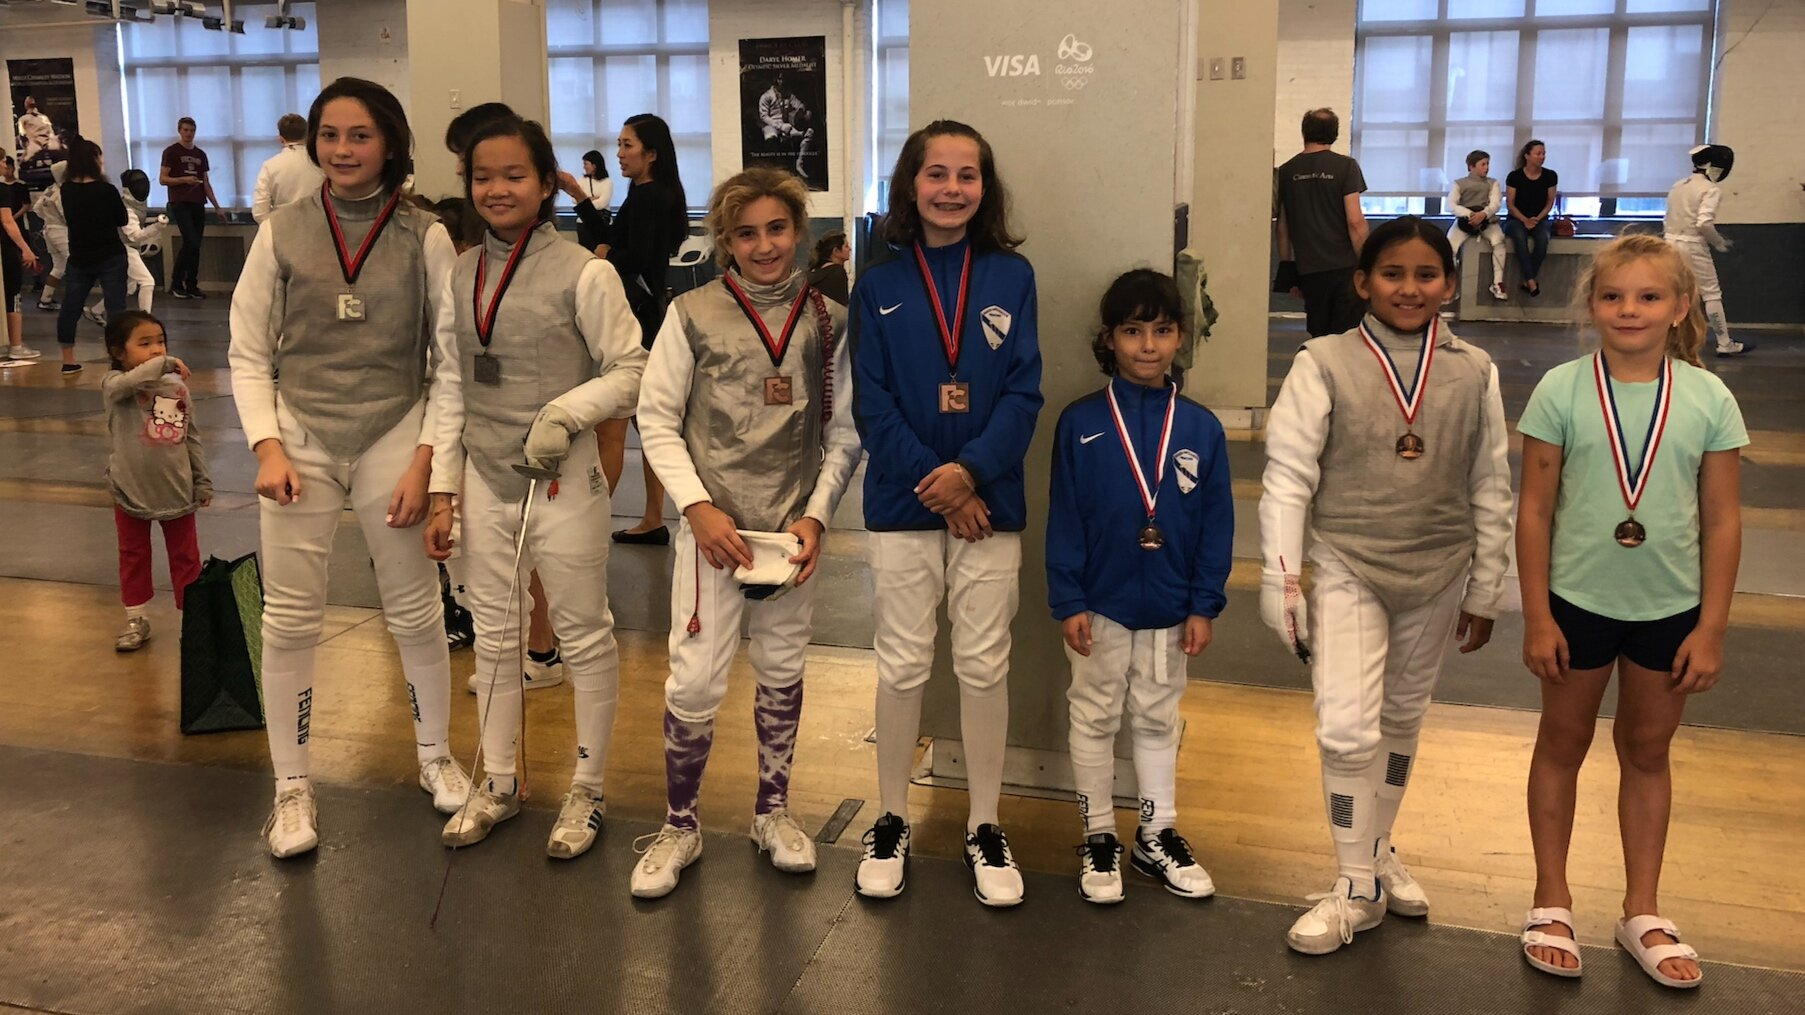 FC Youth Tournament   Xeta Devlin 3rd place Y12 Womens Foil  Emily Cascone 5th place Y12 Womens Foil Adela Woodcock 10th place Y12 Womens Foil  September 22nd 2019